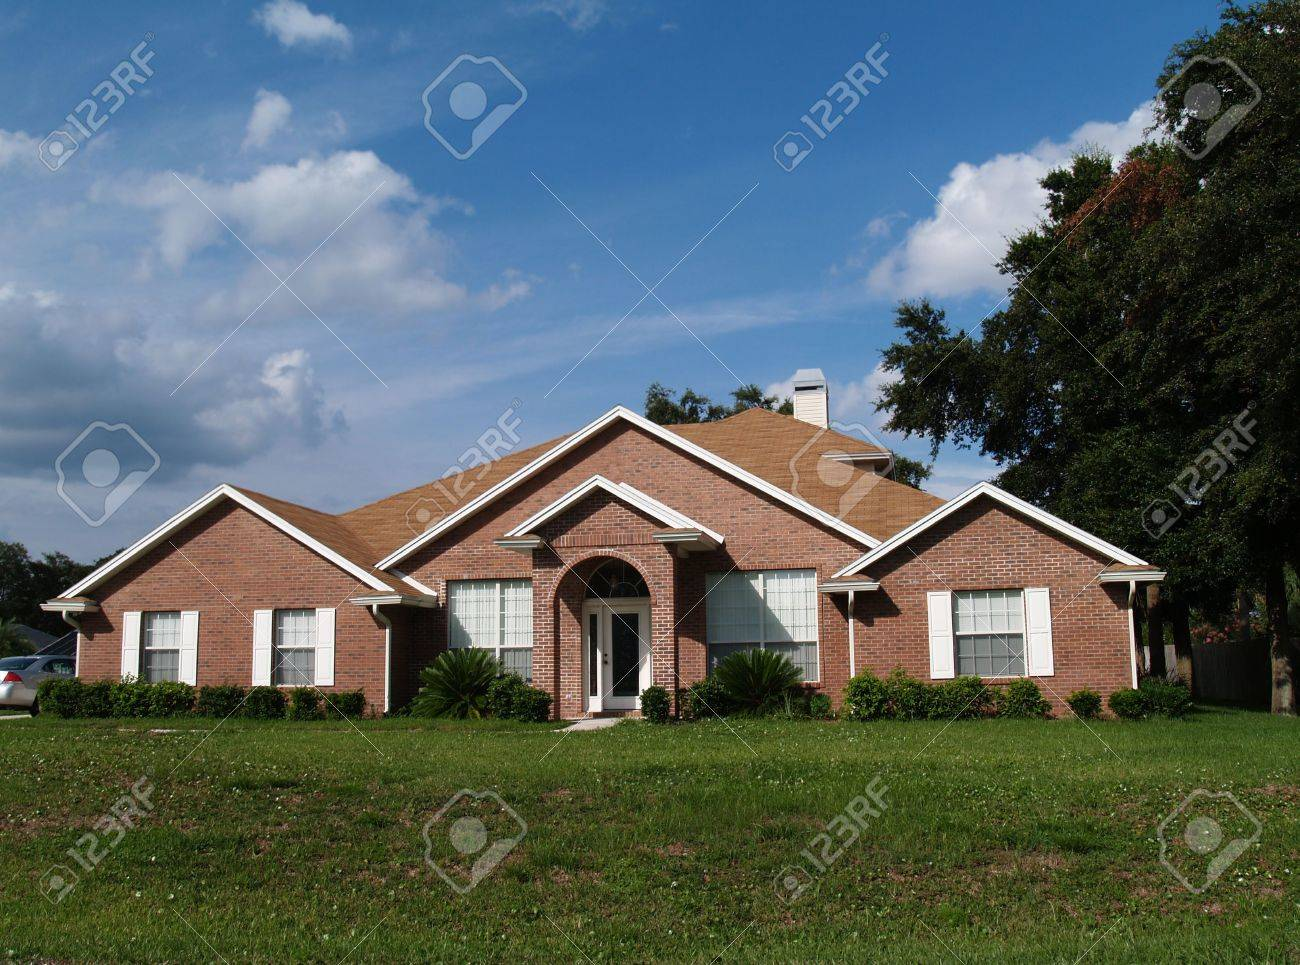 The exterior of a one story brick residential home. Stock Photo - 5580803